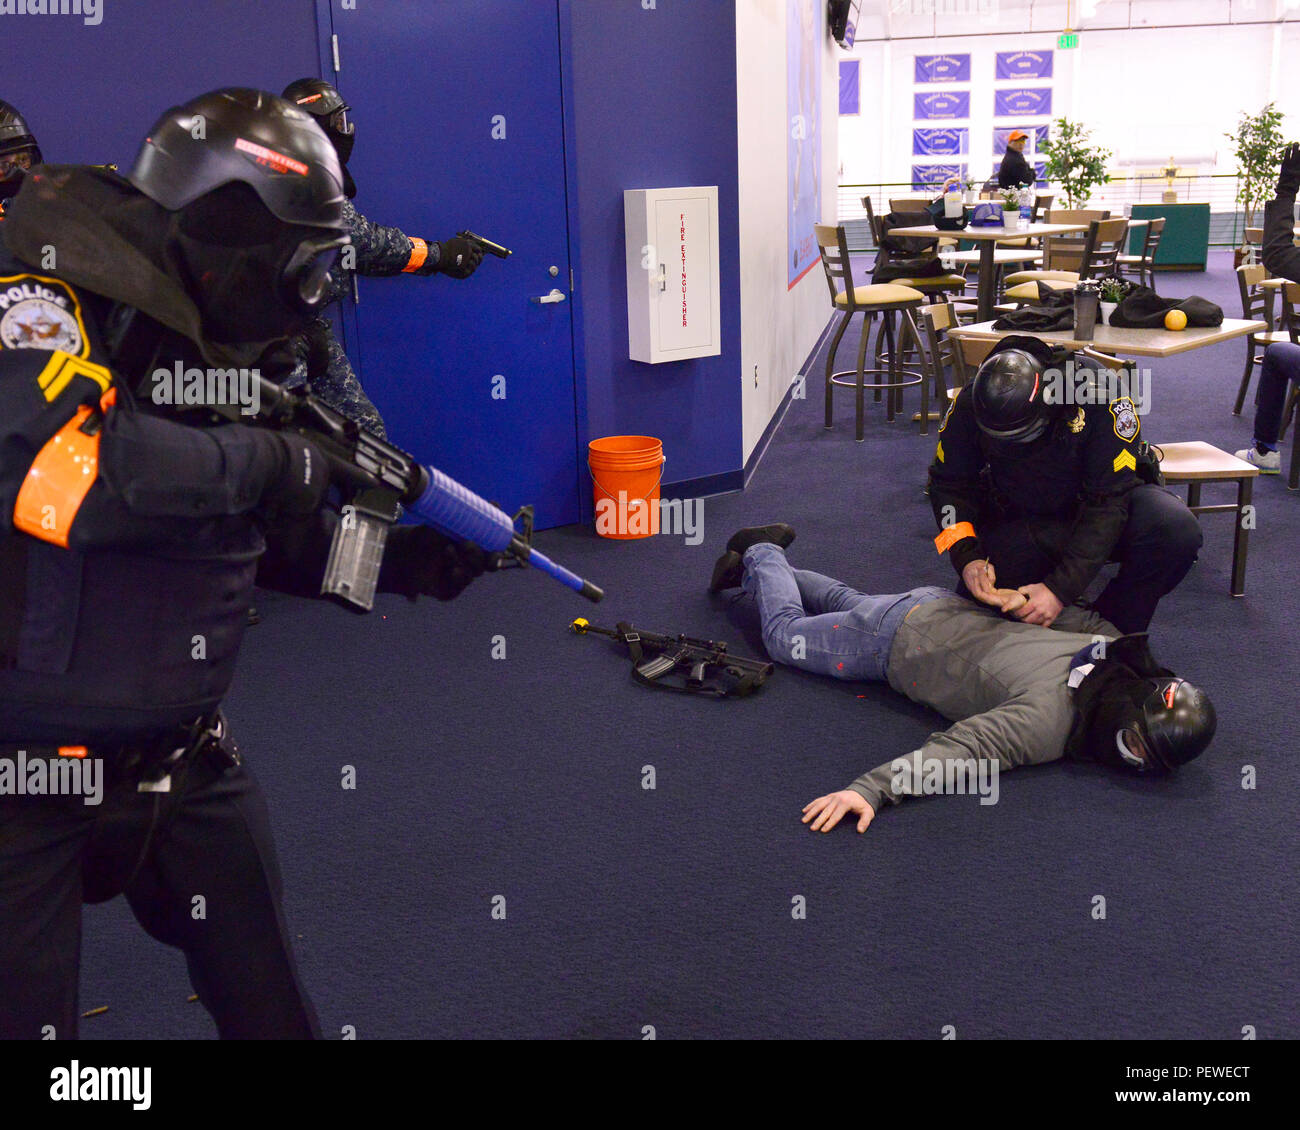 160205-N-ZA795-015 WASHINGTON (Feb. 5, 2016) -- Security forces from Naval Support Facility Annapolis neutralize a simulated 'active shooter' during a drill as part of the annual exercise Solid Curtain-Citadel Shield 2016. Solid Curtain-Citadel Shield is an annual exercise that assesses the readiness of Navy security personnel to respond to threats located on naval installations and individual units. (U.S. Navy photo by Mass Communication Specialist 1st Class Pedro A. Rodriguez/Released) - Stock Image